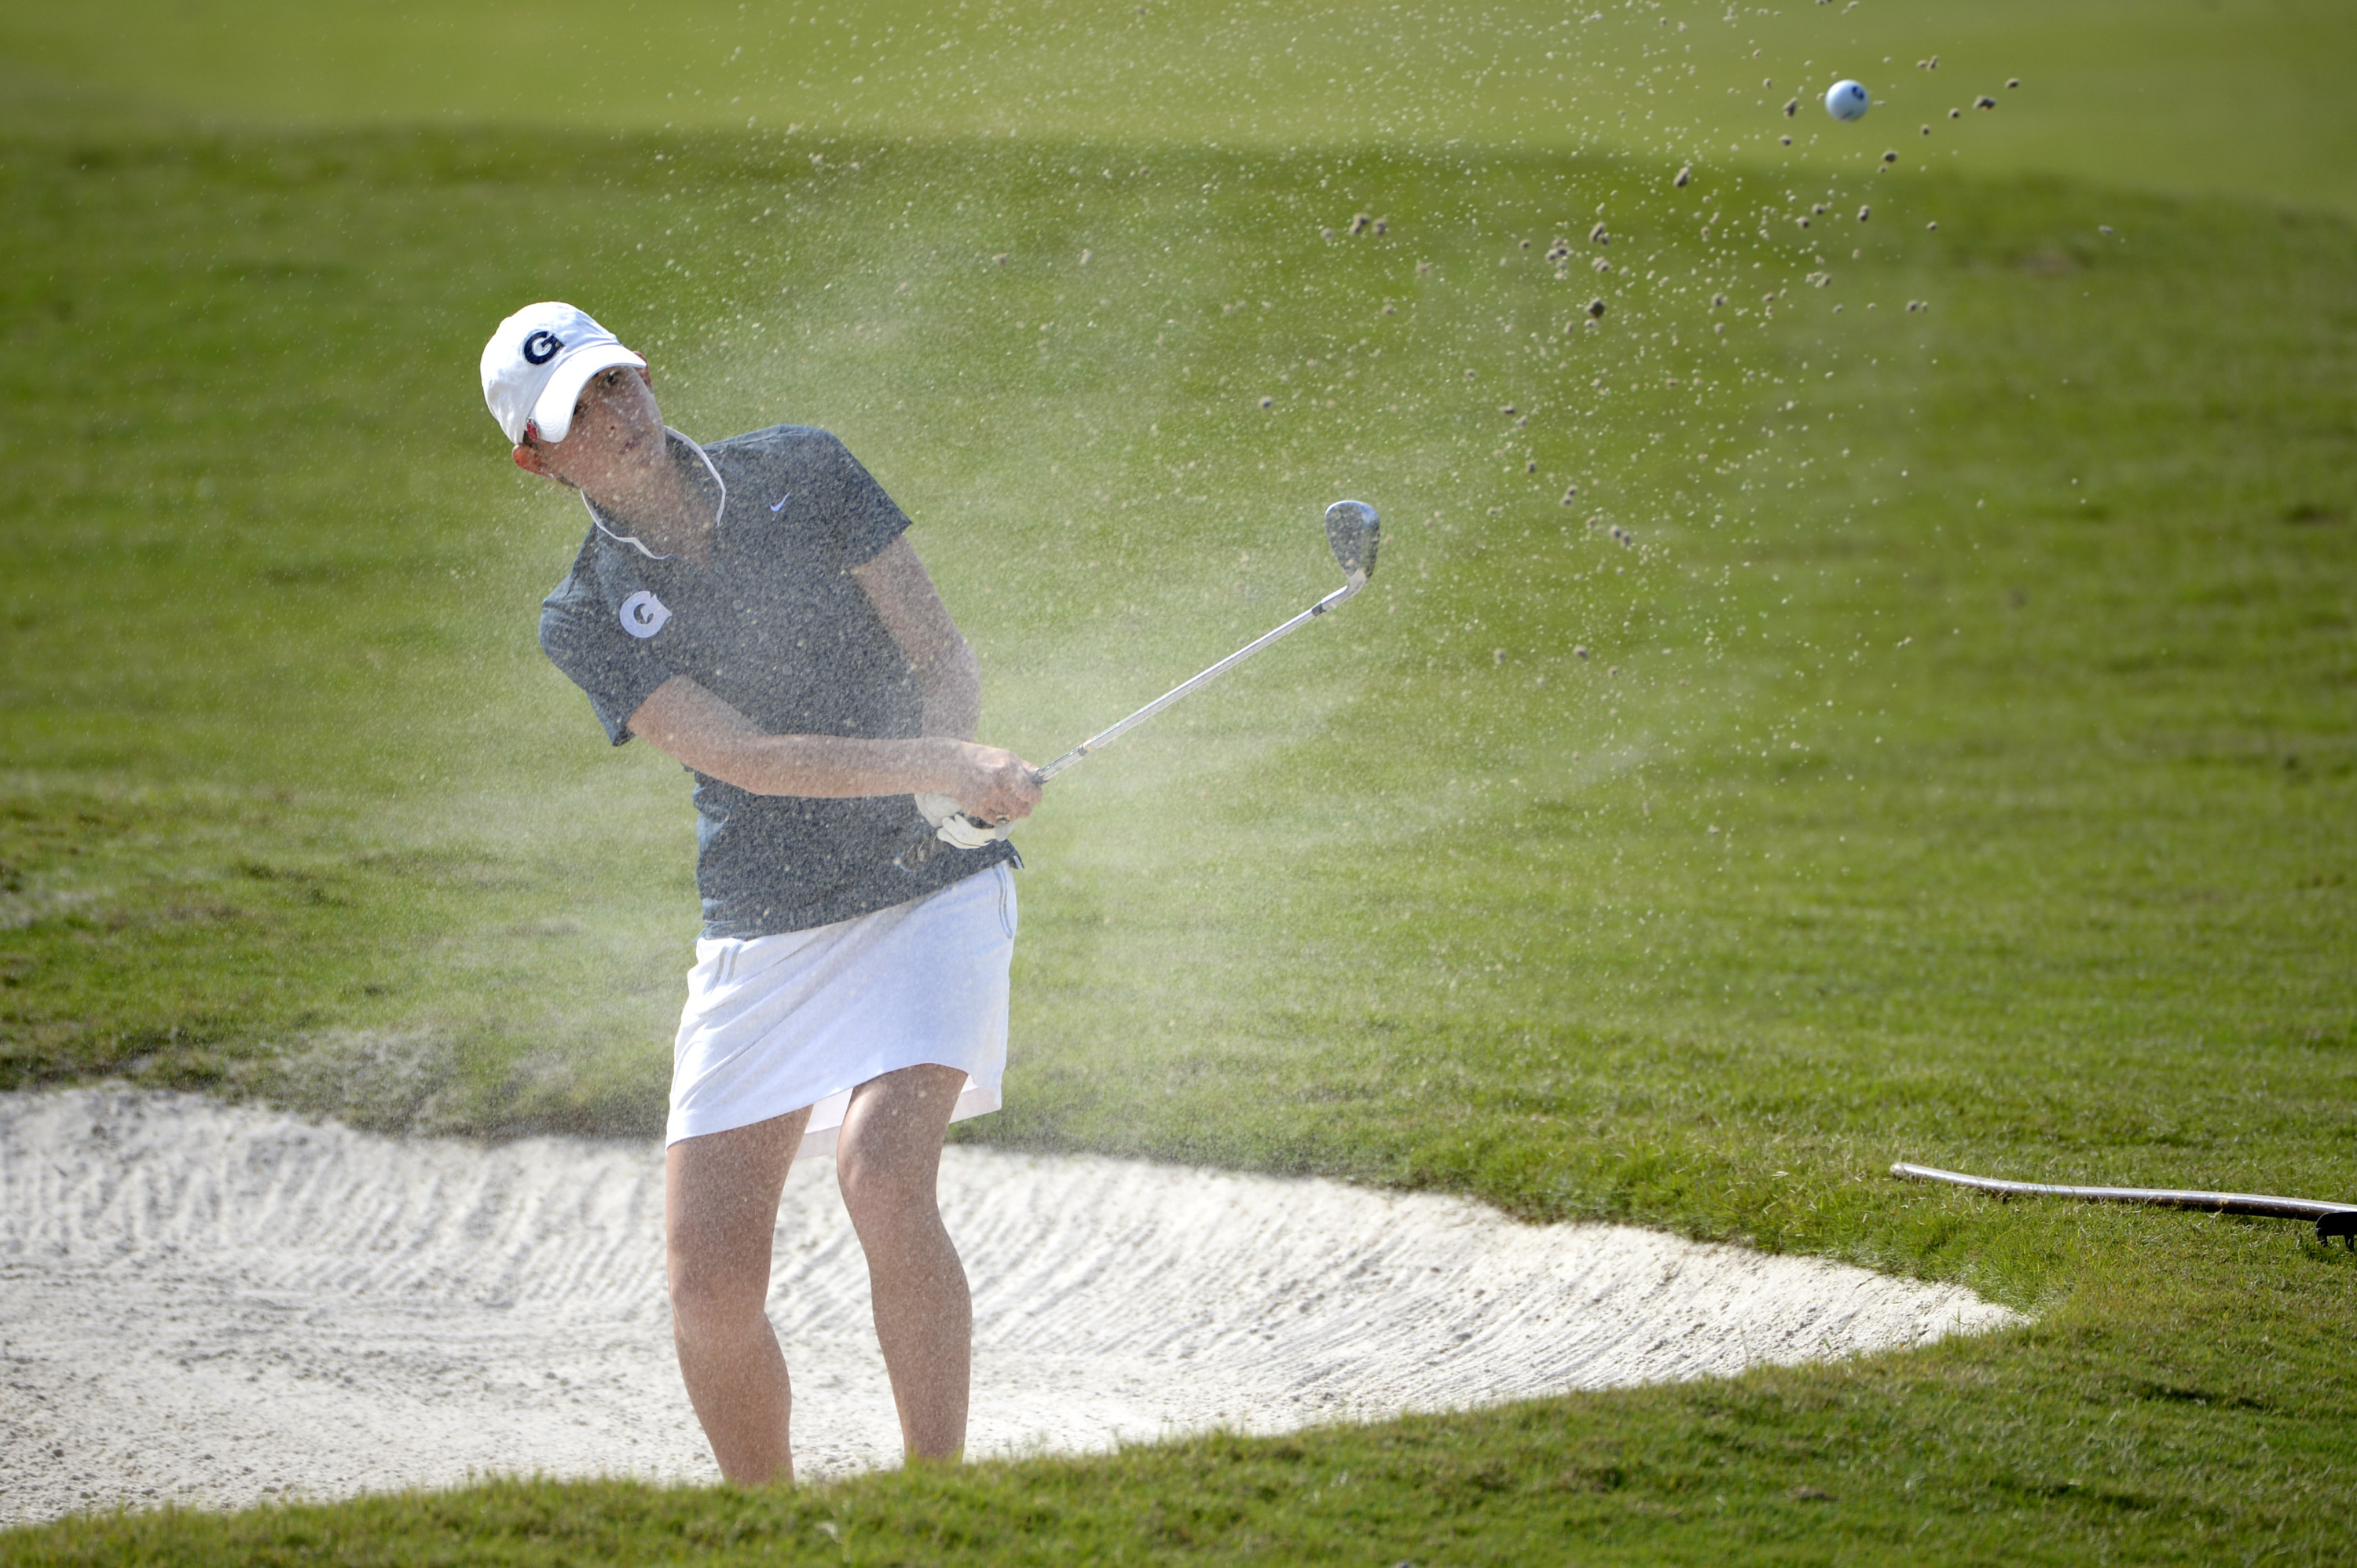 Two Georgetown University women's golfers are among the top-20 overall as the Hoyas shot a 27-over par 315 in the first round and stand in eighth place after the first day of play at the William & Mary Invitational, being held at the Kingsmill Resort in Williamsburg, Va.